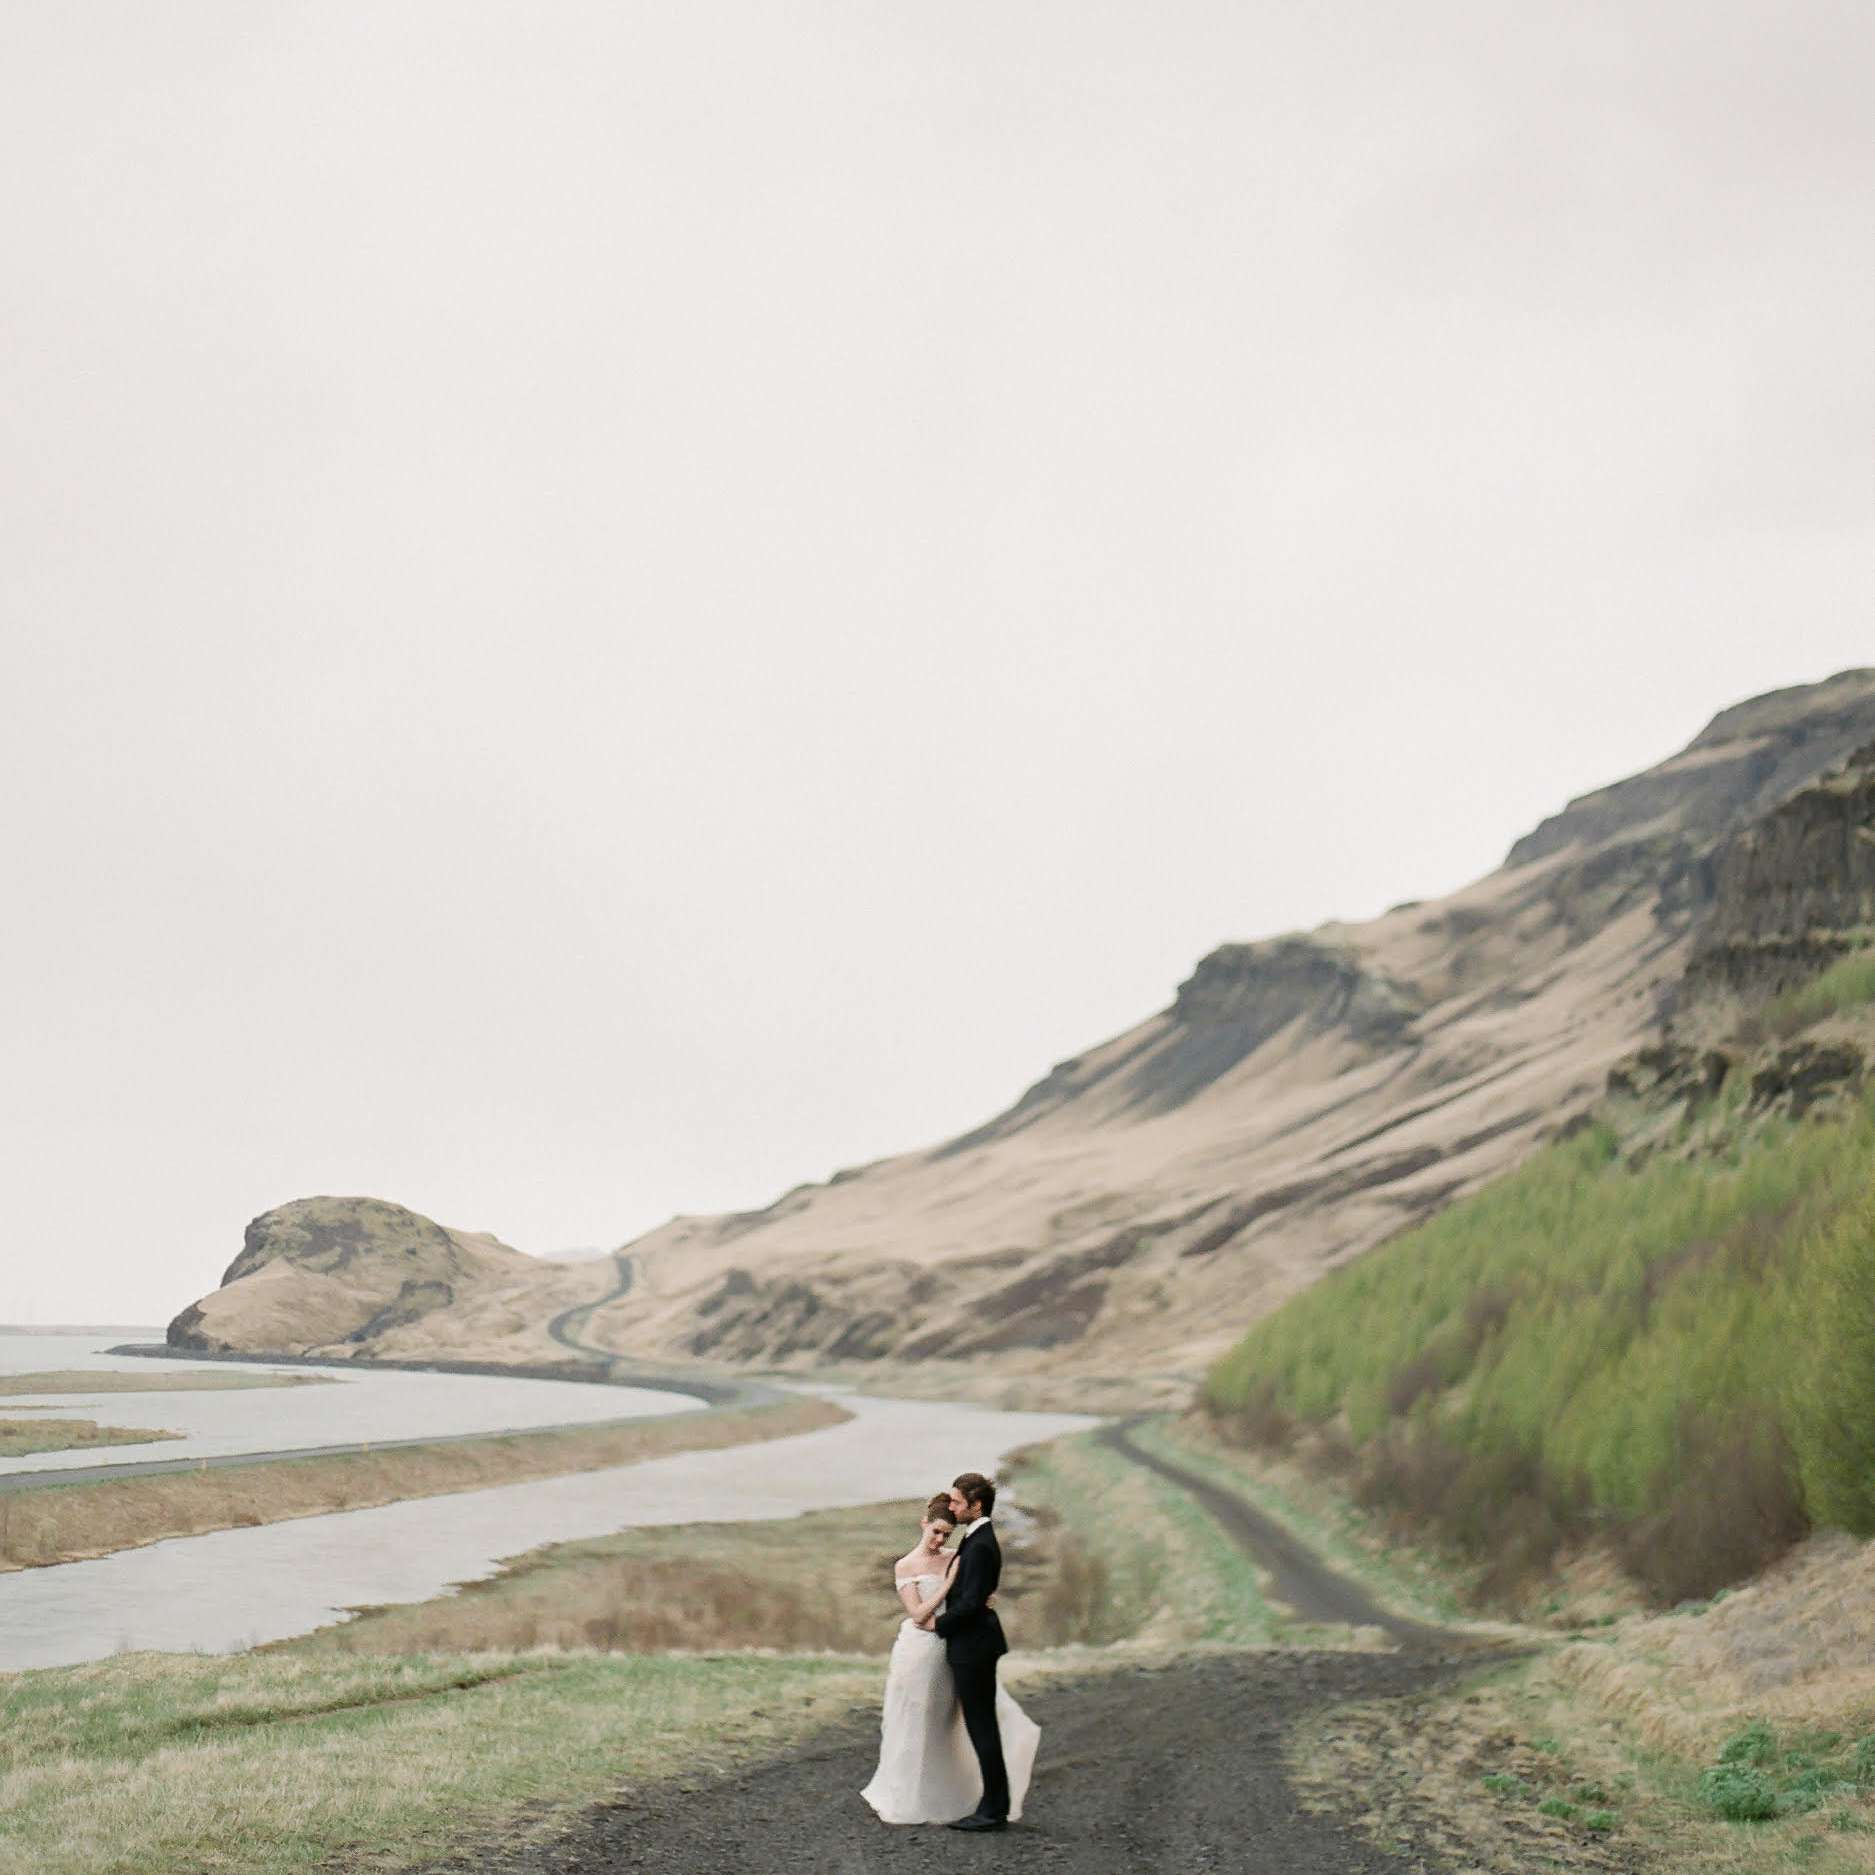 Couple hugging a on road in Iceland